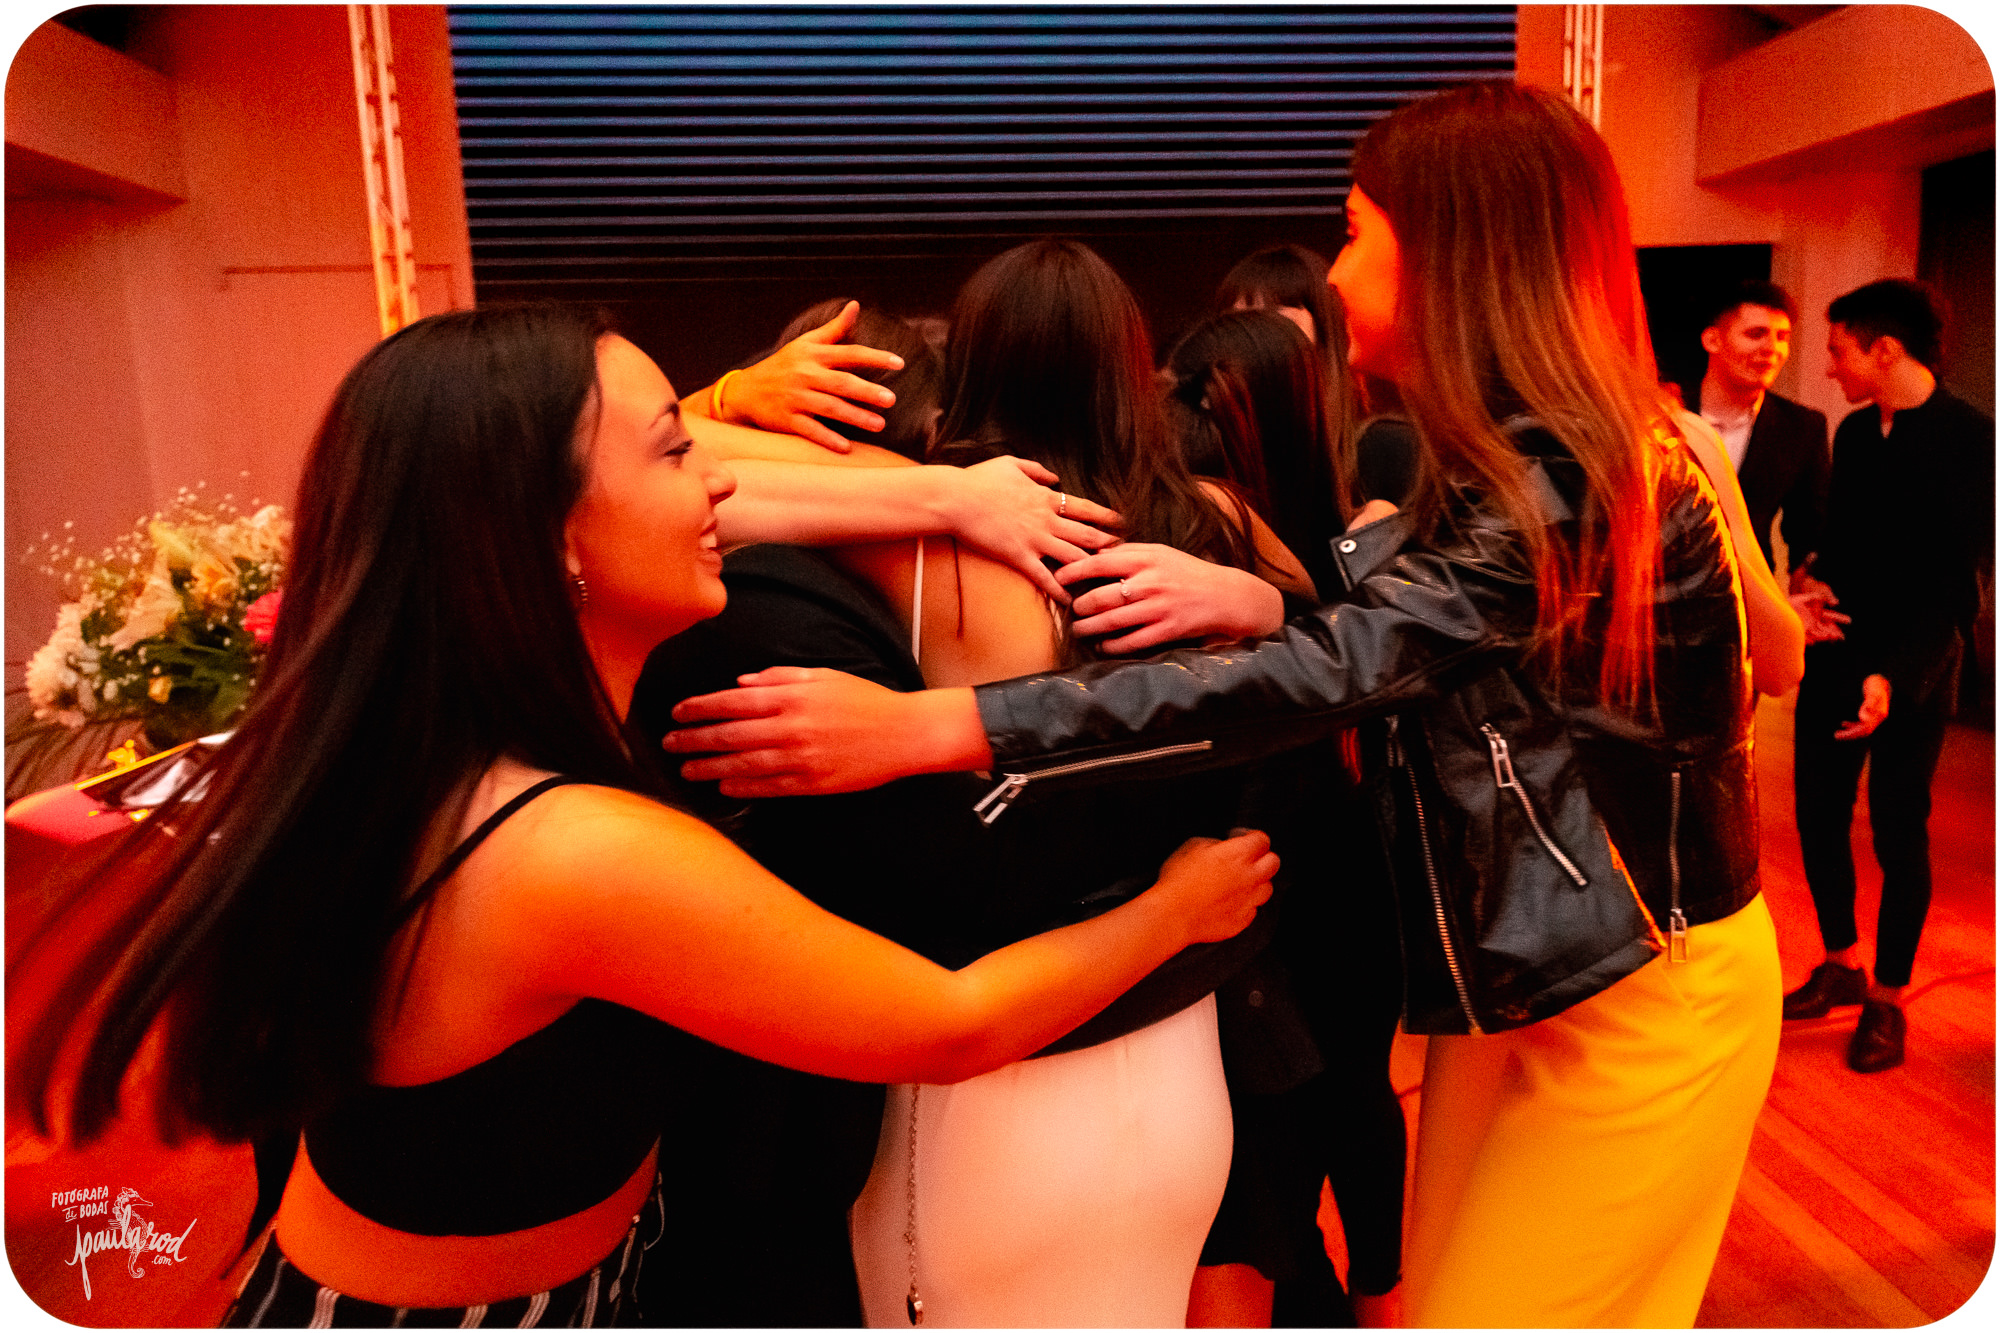 fotografia_documental_para_quinces_en_castelar (4).jpg